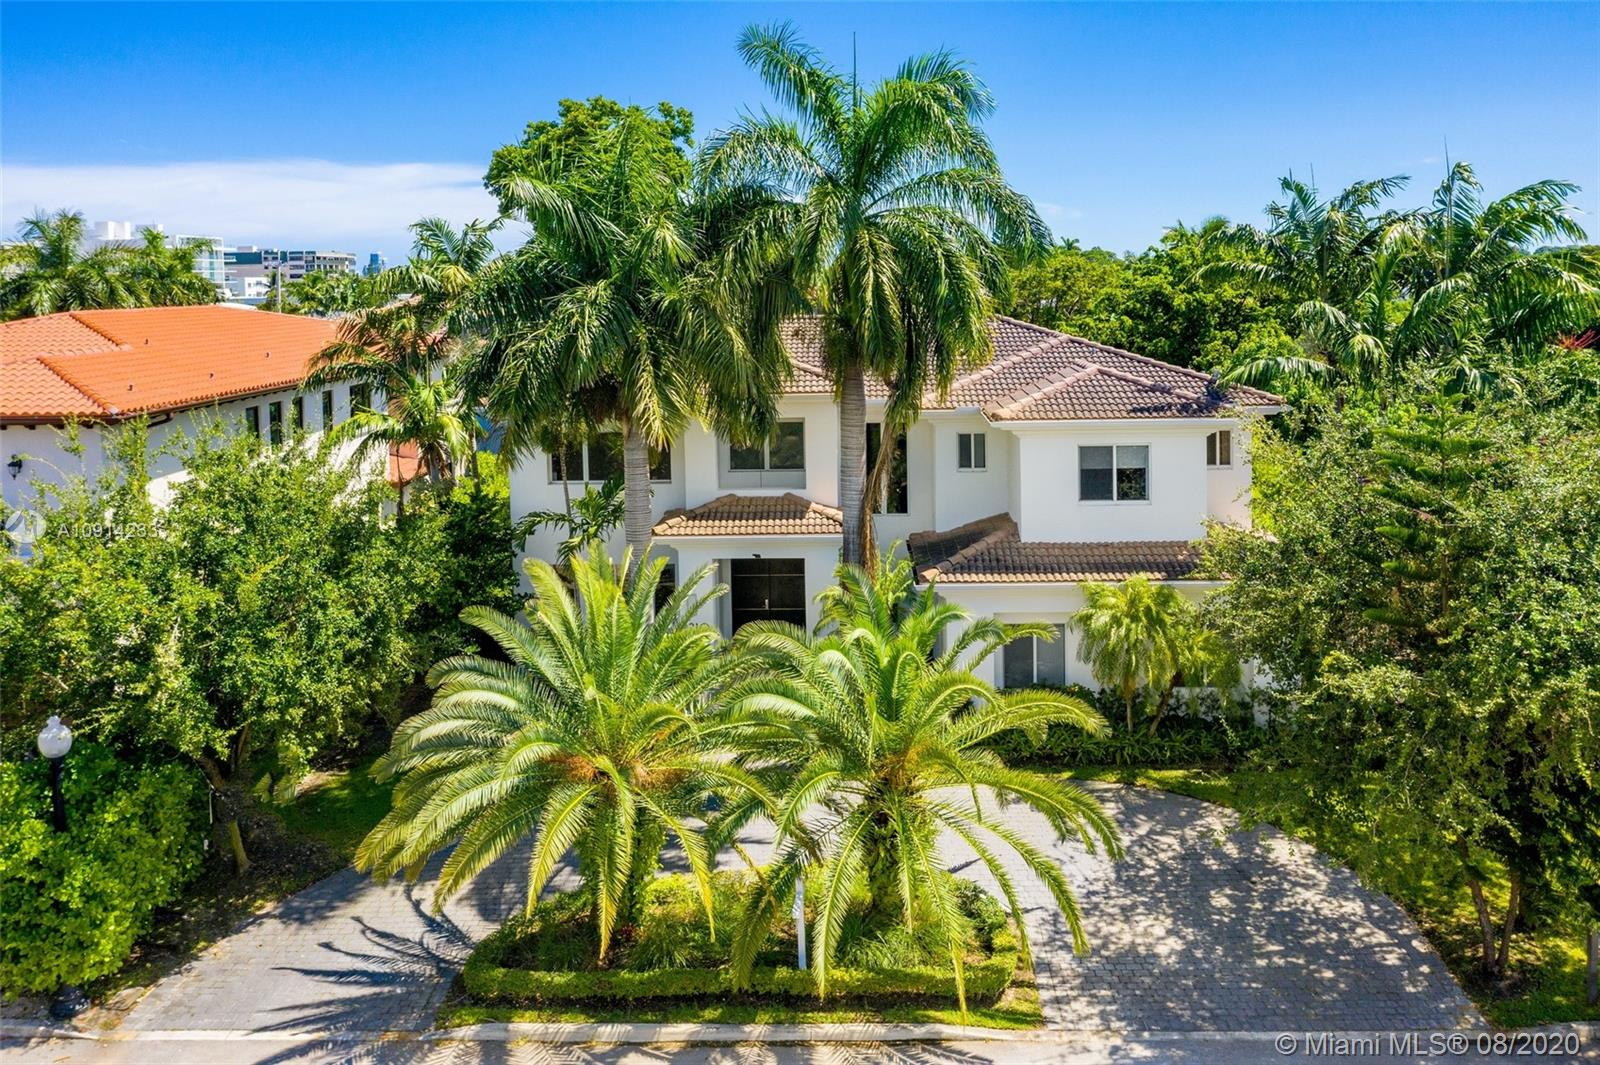 This gorgeous home in Bay Harbor Islands features 4,730 square feet of perfectly decorated detail. Walk through the grand entry to your living room with double volume coffered ceilings, gourmet eat-in kitchen, and family room that overlooks the pool and patio areas, with an overhang providing comfort for outdoor dining. The perfect flow of this 5 bedroom home is ideal for a large family, with a playroom, office with an en-suite bathroom, master suite with a large closet and terrace overlooking the pool. Walking distance to restaurants, beaches, shopping, A+ schools, and more.